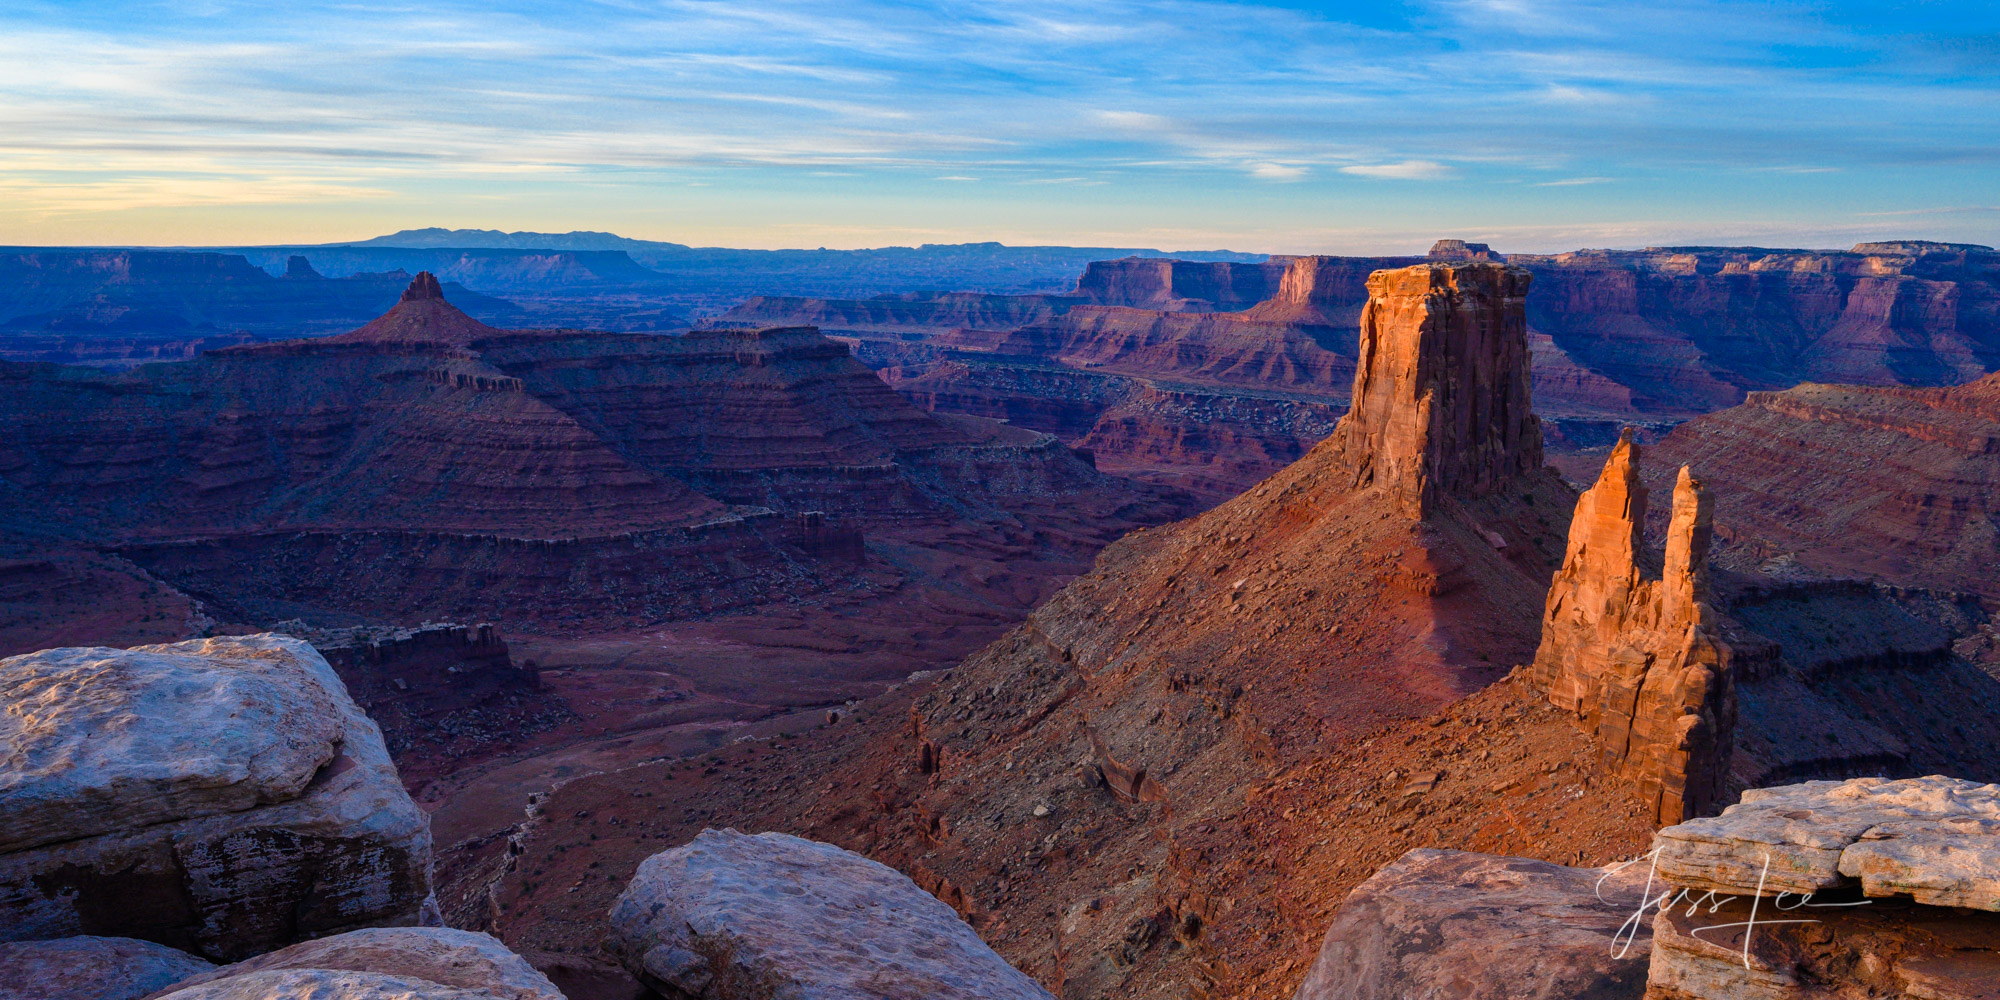 Morning view of Canyonlands